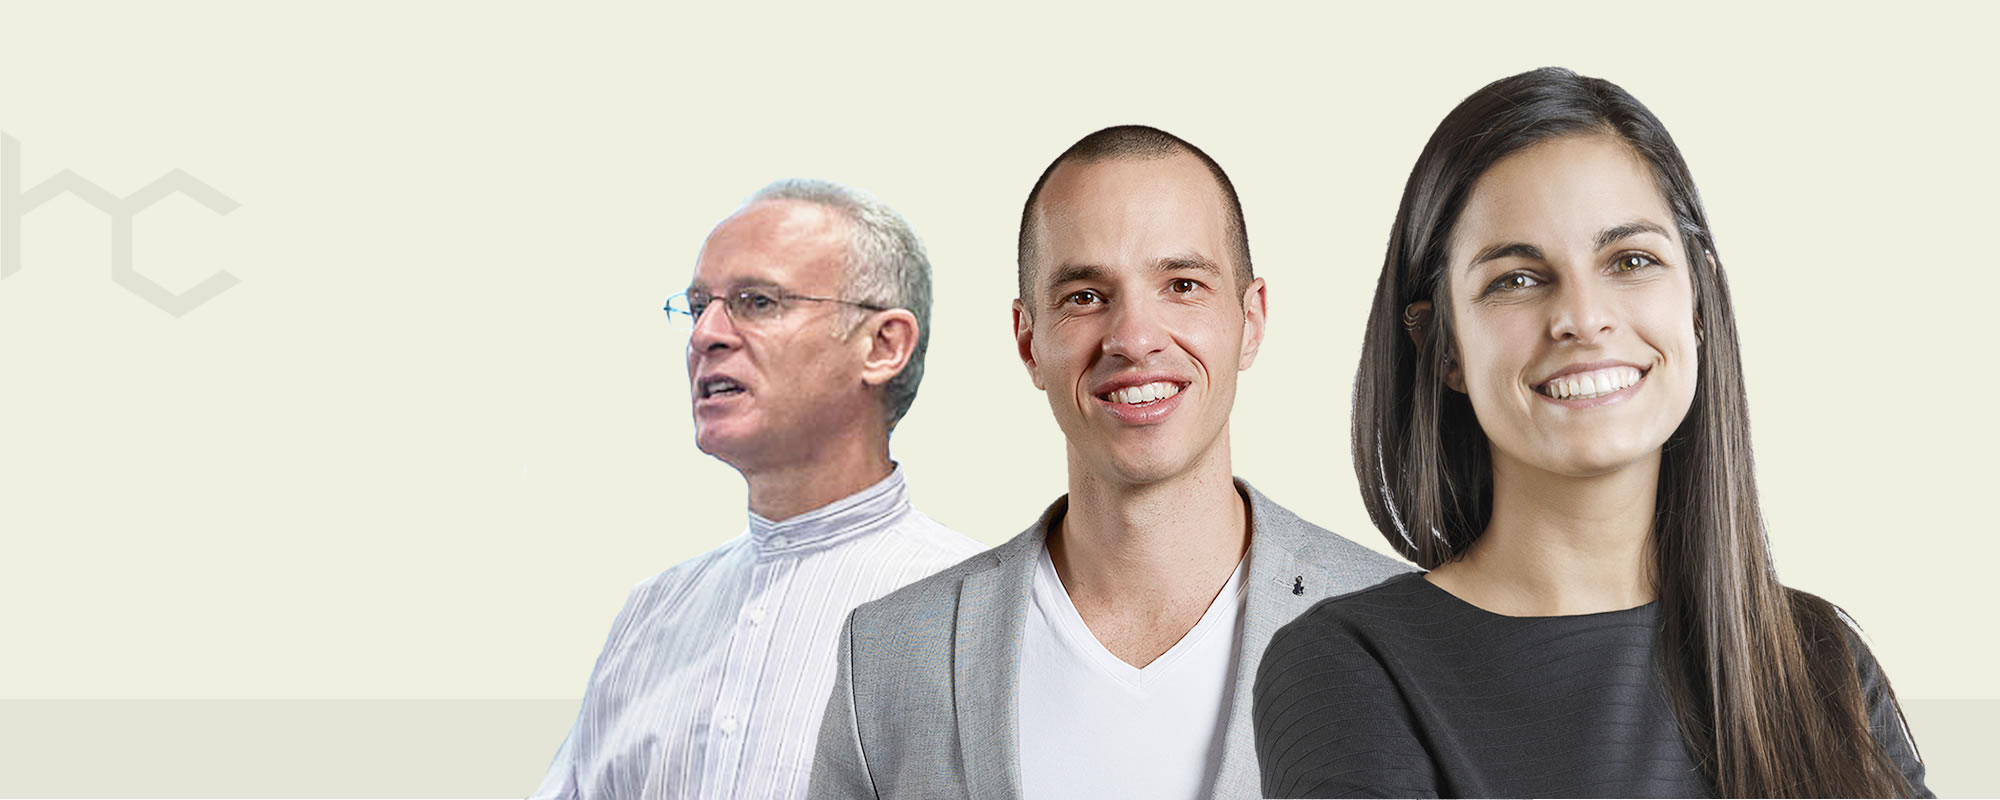 On the 31st October, Arthur Goldstuck, Brad Elliott will be joined on the Heavy Chef stage by Ailyssa Khan, of Uber Eats, who will present on how consumer transactional behaviour is being affected by mobile applications.